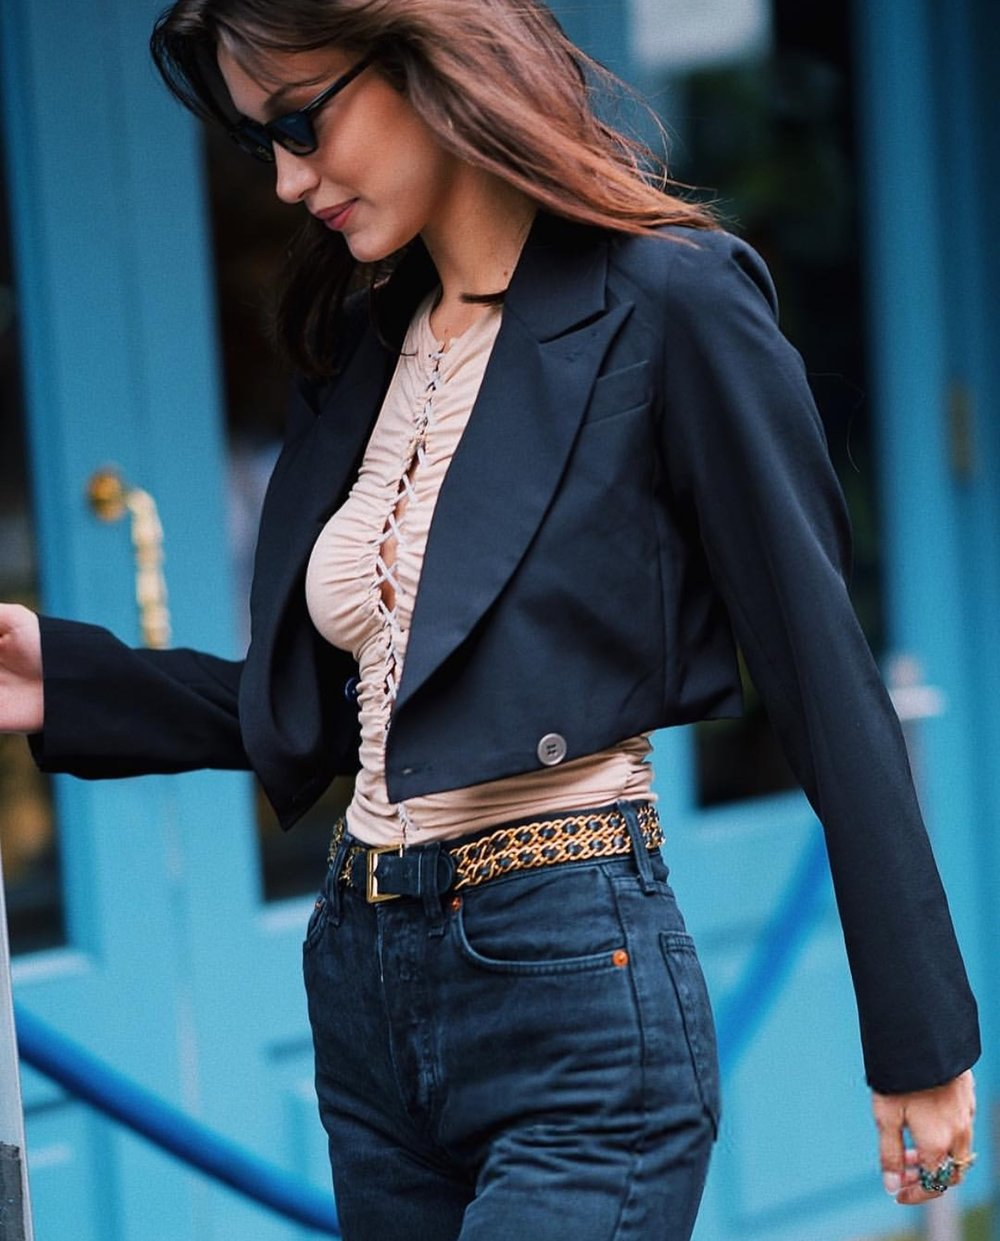 Blazer Top on Bella Hadid.jpg